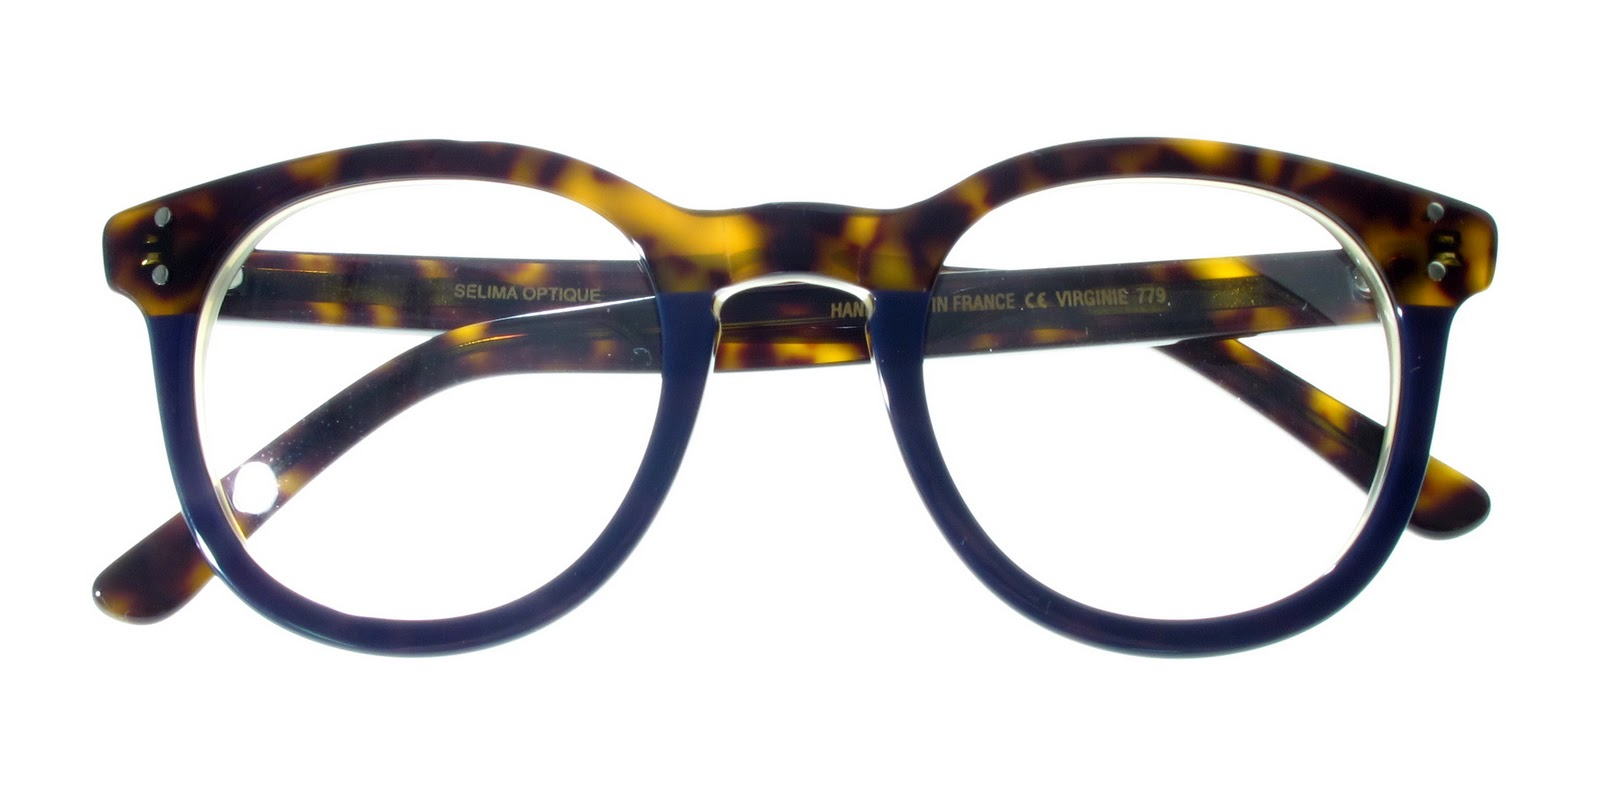 selima optique just in new eyewear arrivals on